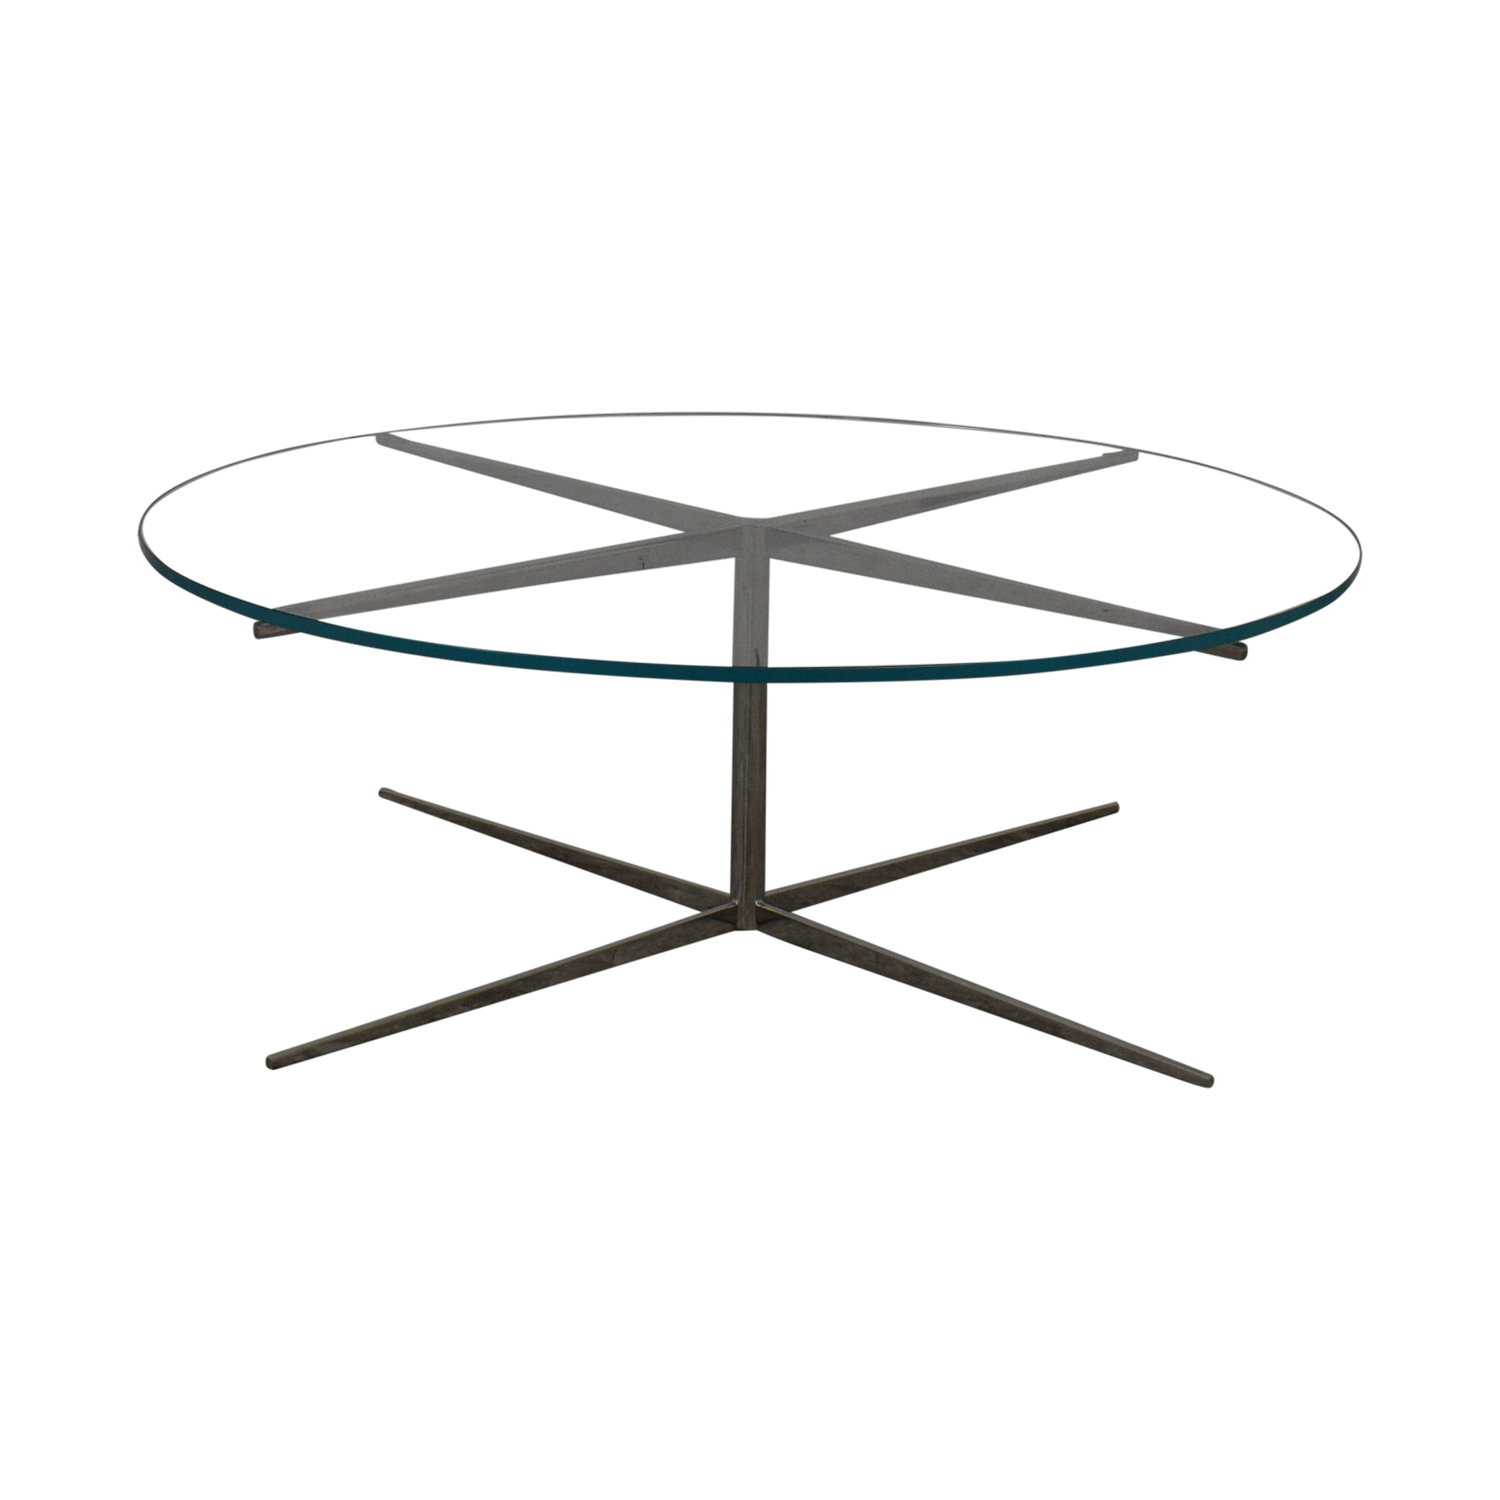 Bernhardt Bernhardt Round Coffee Table used